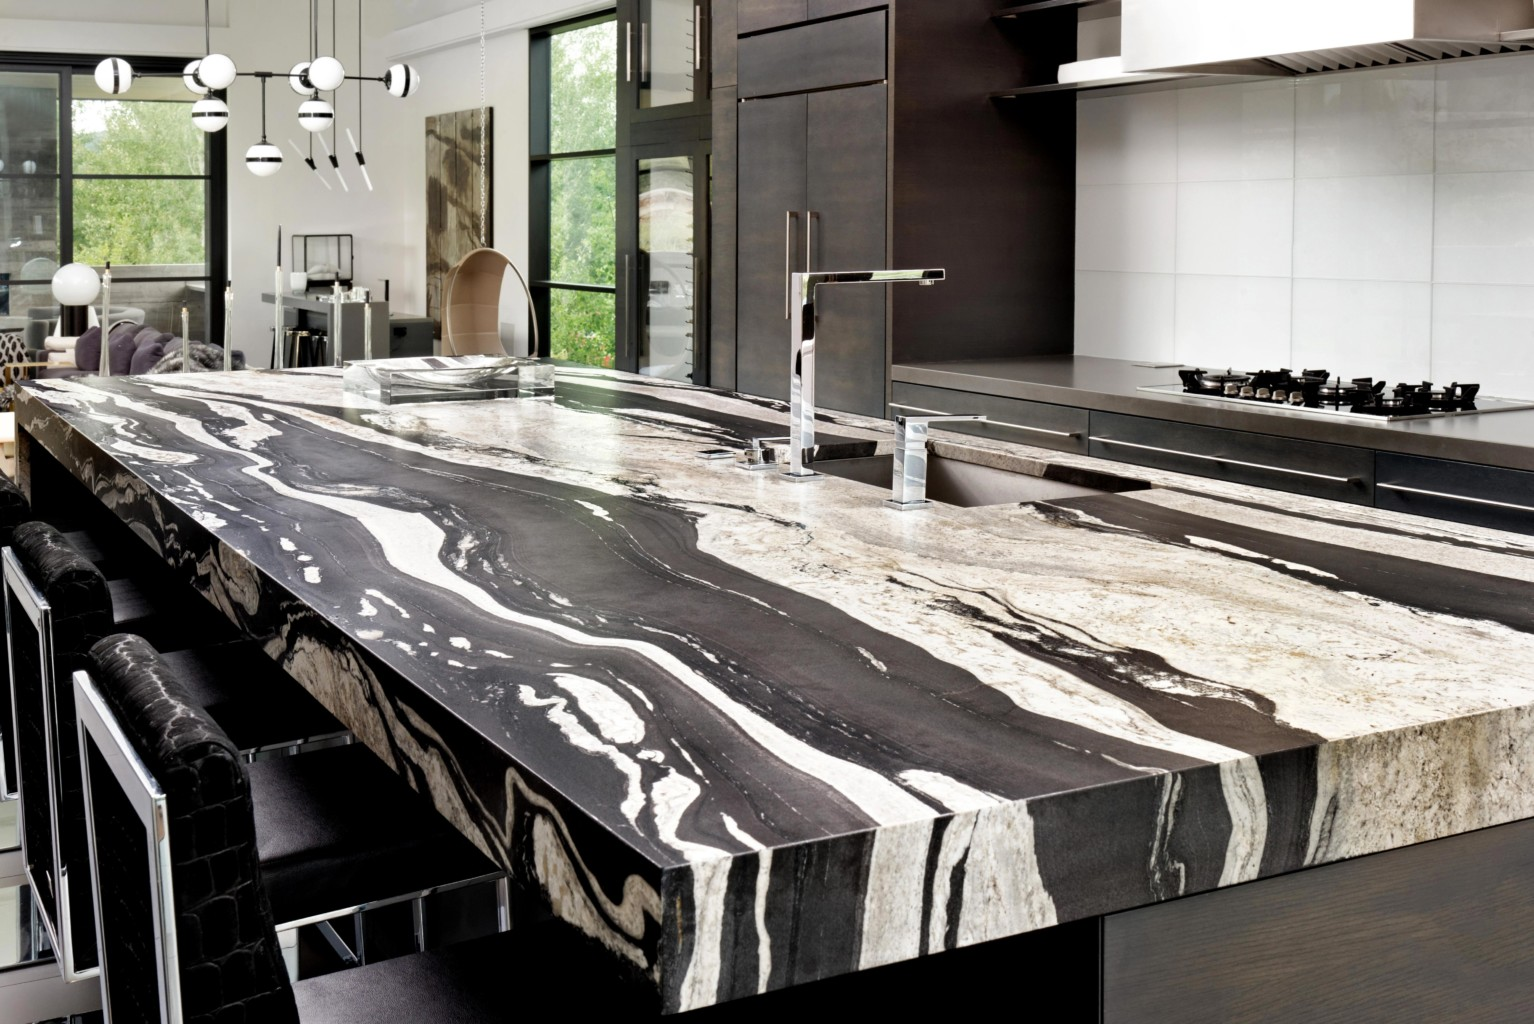 Marble, Quartz, and Cocoa: Why Chocolatiers Prefer Stone Countertops